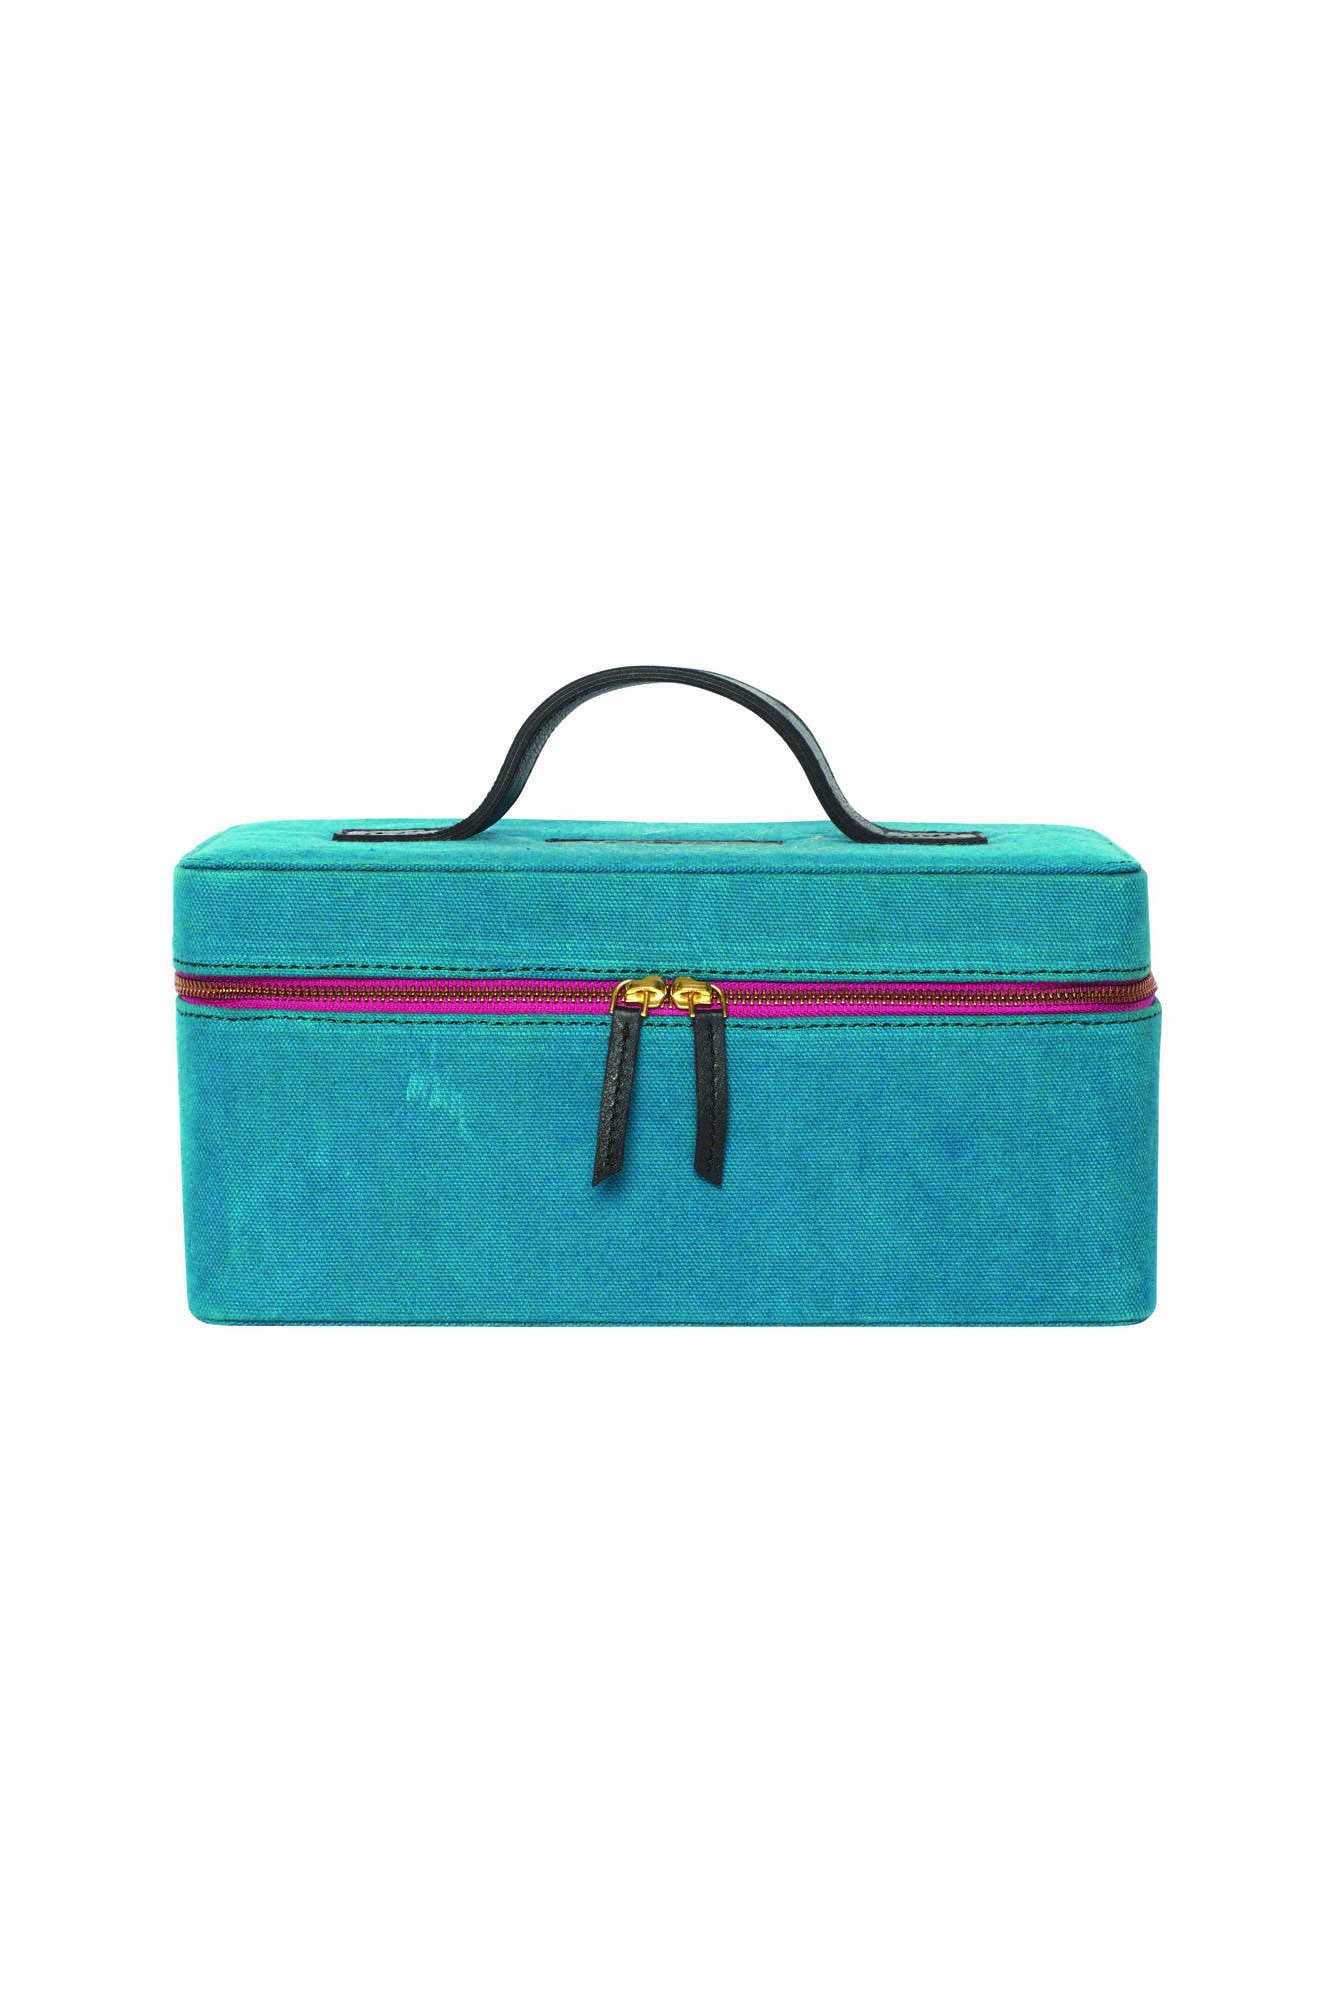 AW17 KIP&CO TEAL TOILETRY CASE